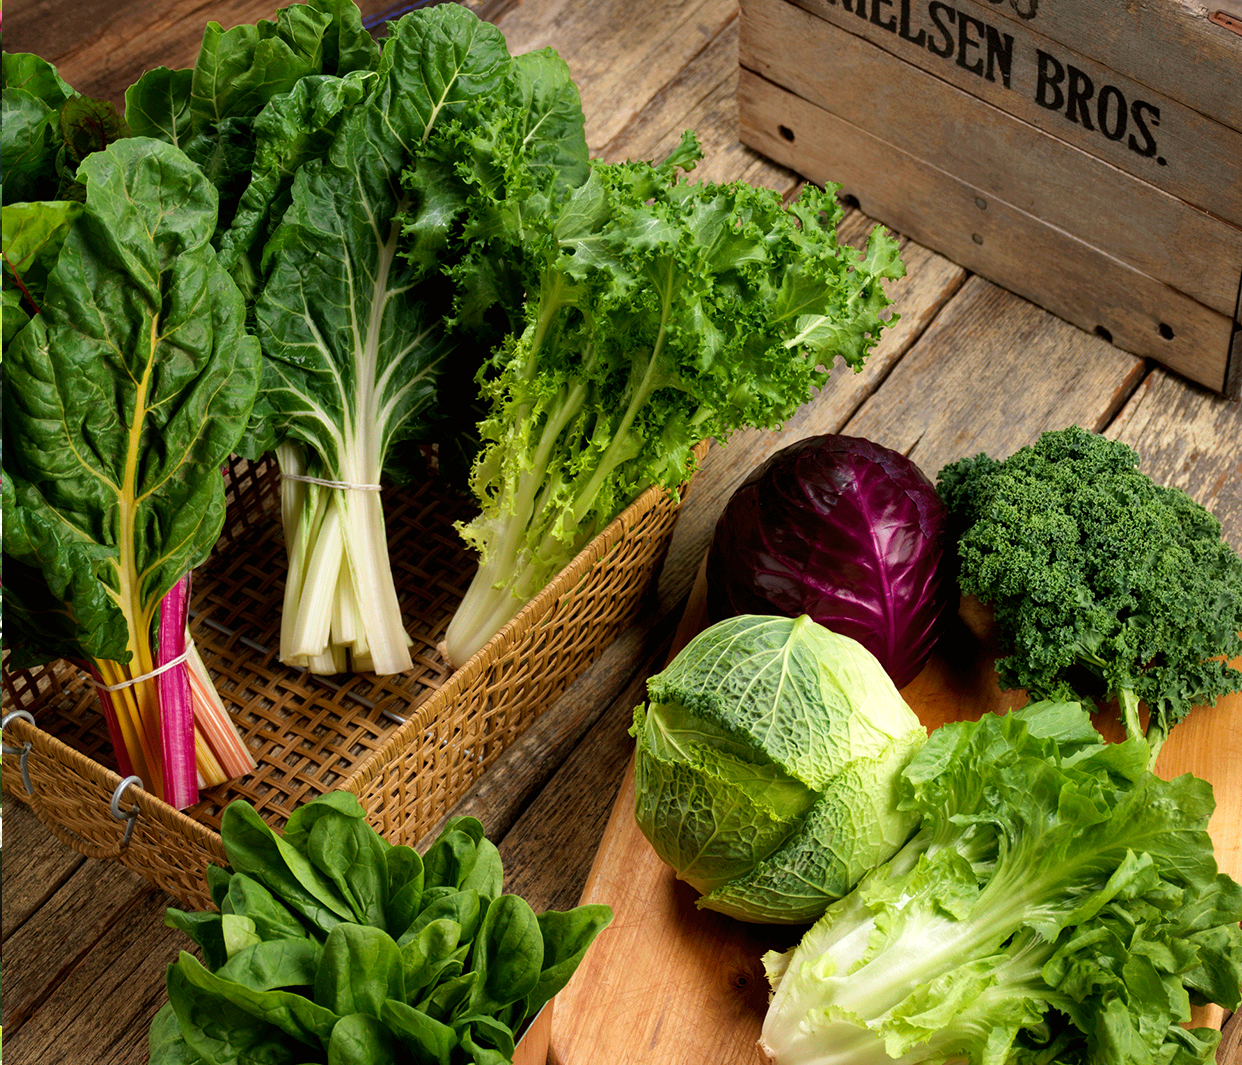 an assortment of leafy green vegetables including chard, escarole, endive, cabbbage, kale and spinach